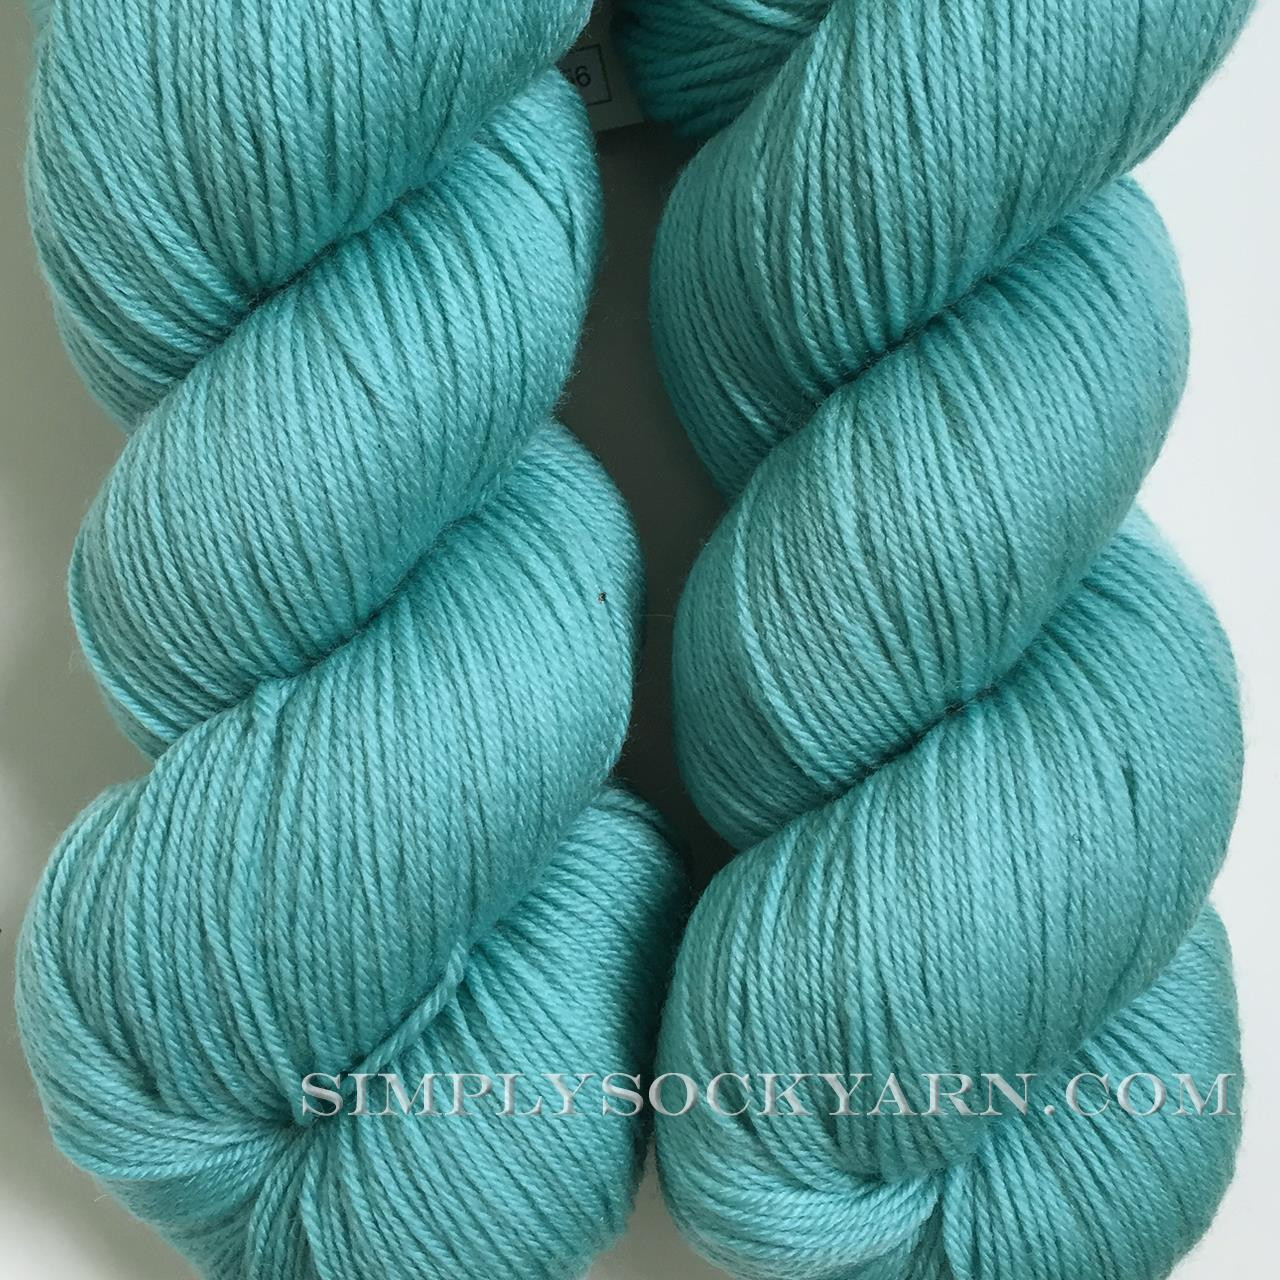 CY Heritage 5704 Dusty Turquois